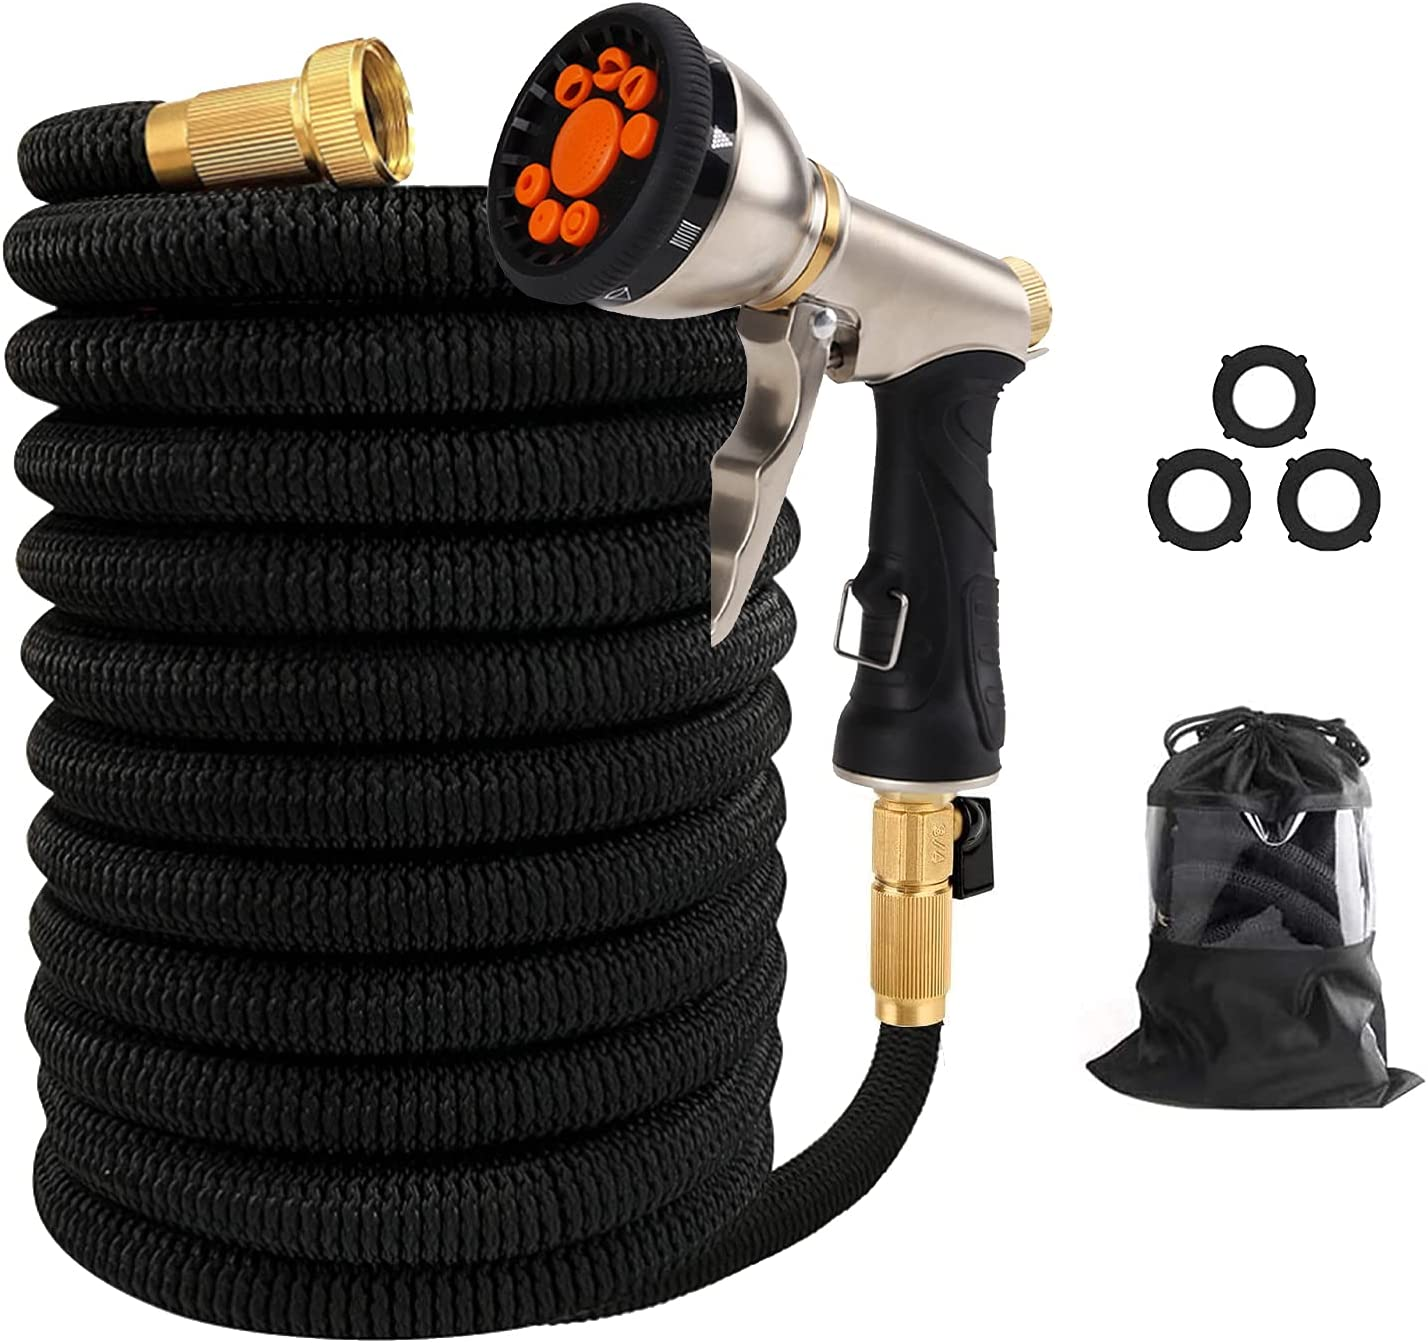 FUMONCHY Expandable Garden Hose 50ft, Lightweight Water Hose with 9 Functions Hose Nozzle, 3750D Durable Expanding Yard Hose for Outdoor Yard Car Wash